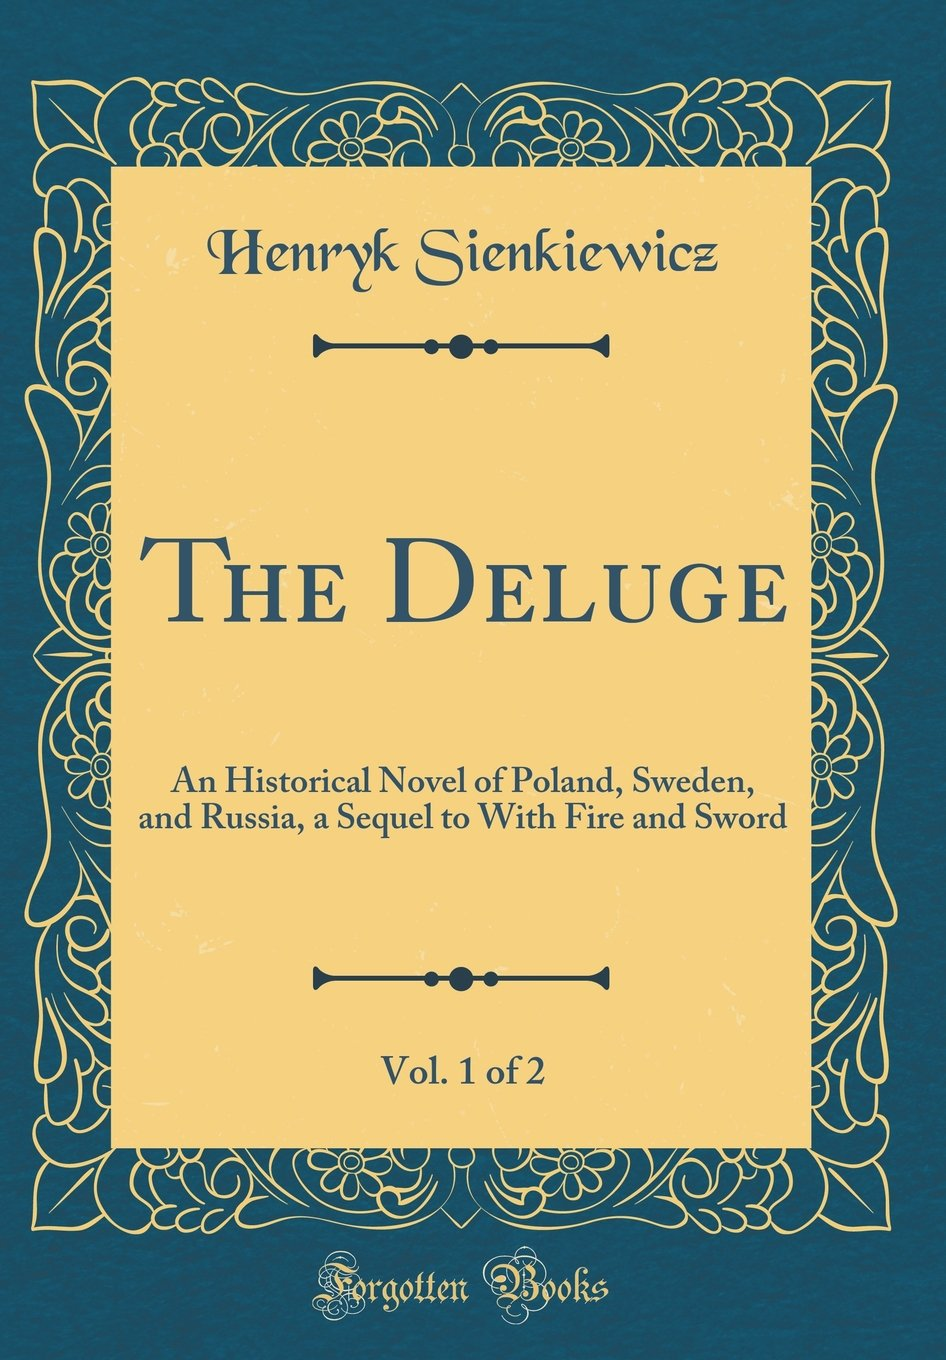 THE DELUGE. An Historical Novel OF POLAND, SWEDEN, AND RUSSIA (Volumes 1 and 2)